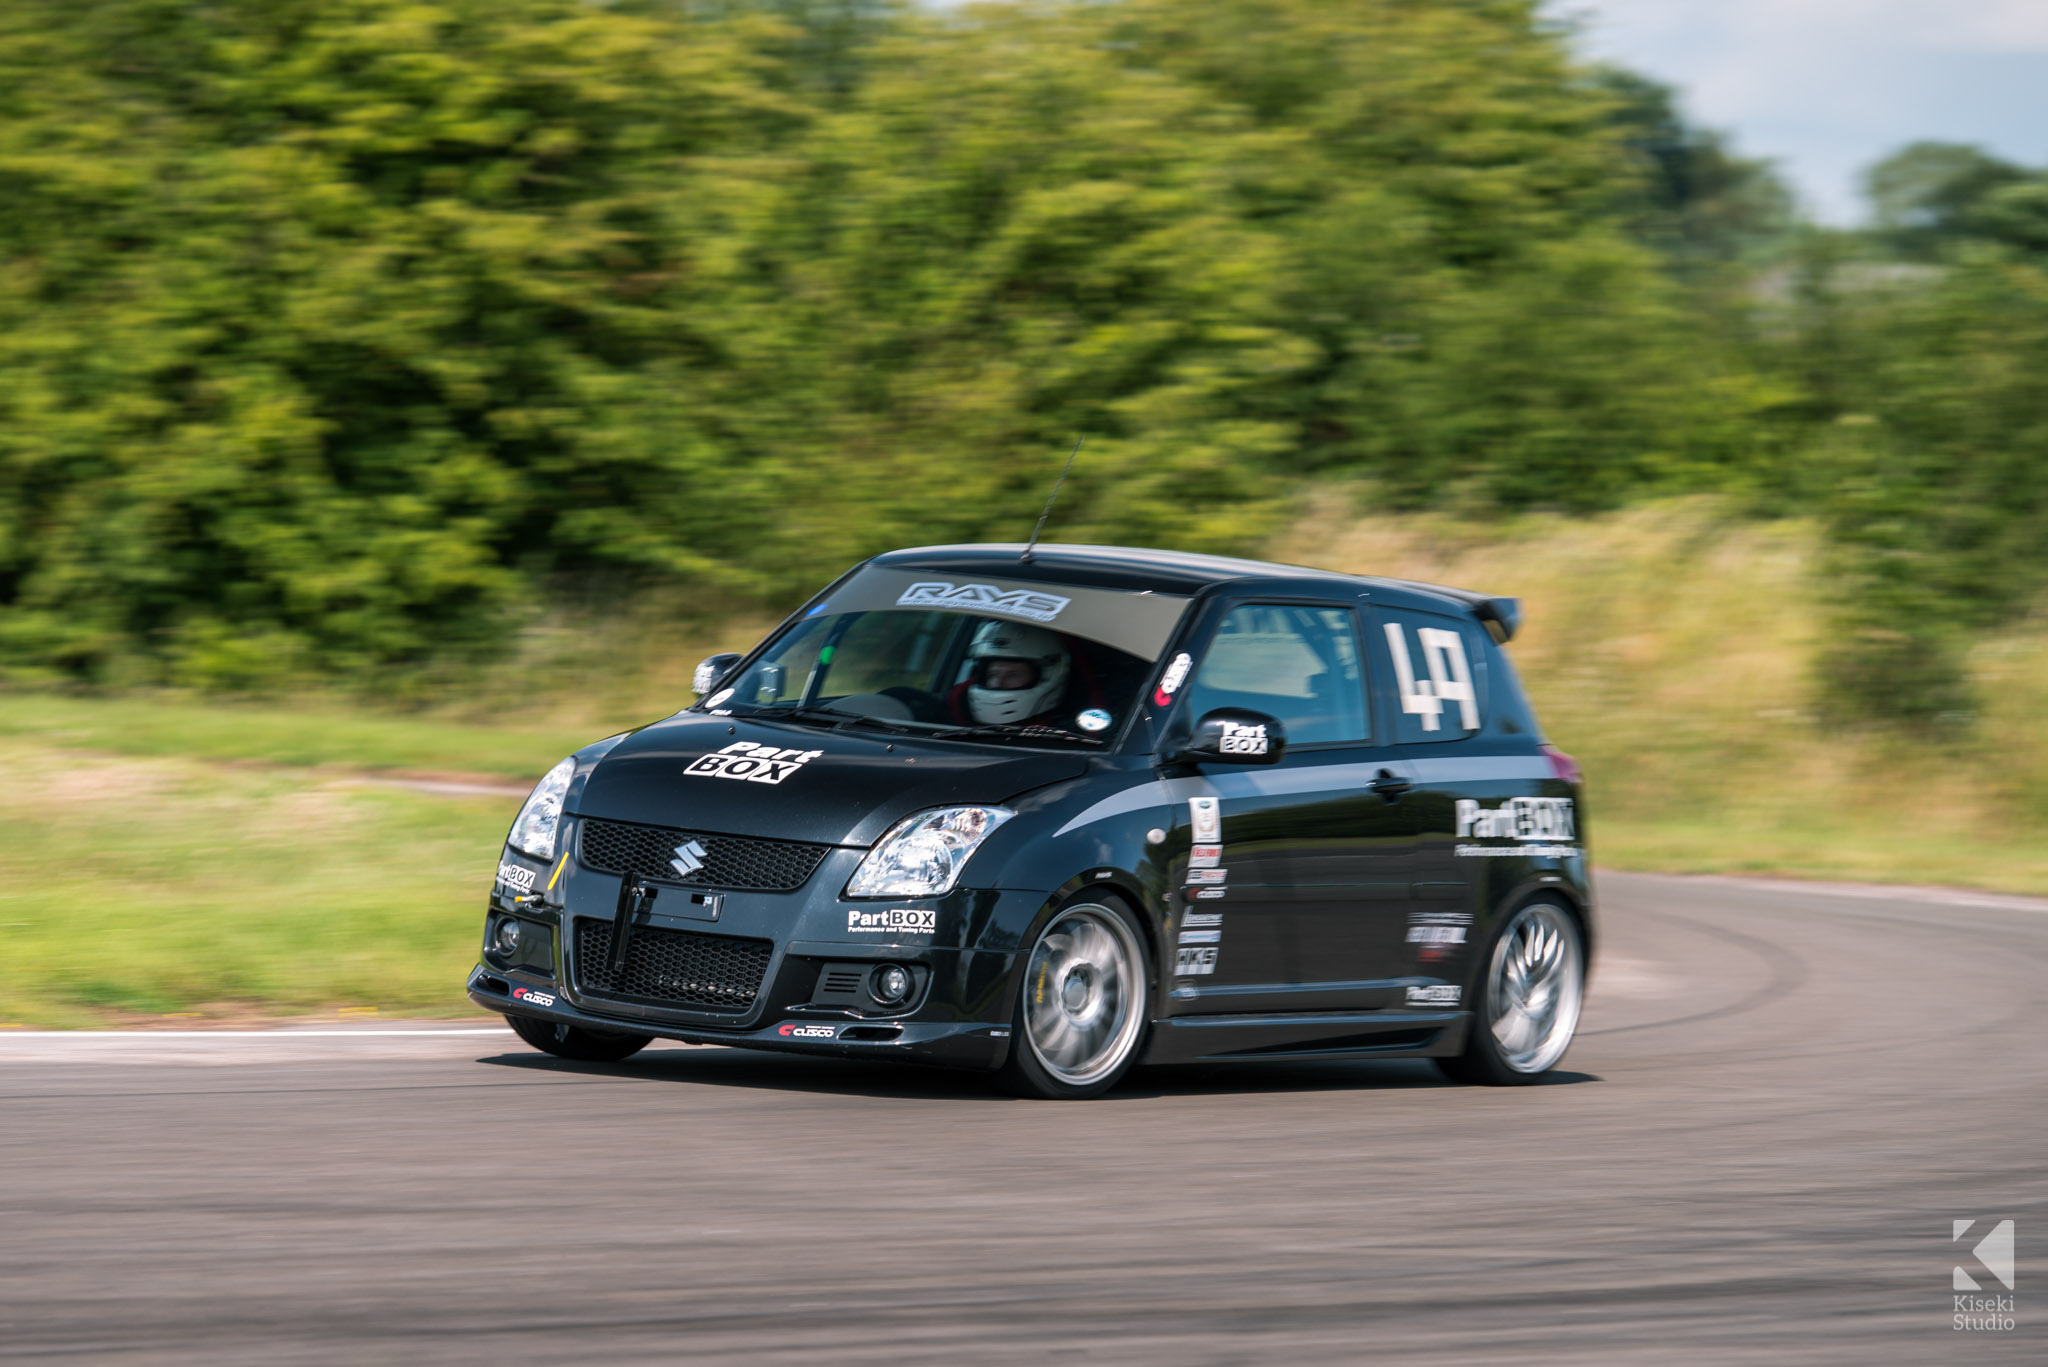 Suzuki Swift Sport Curborough Sprint Course